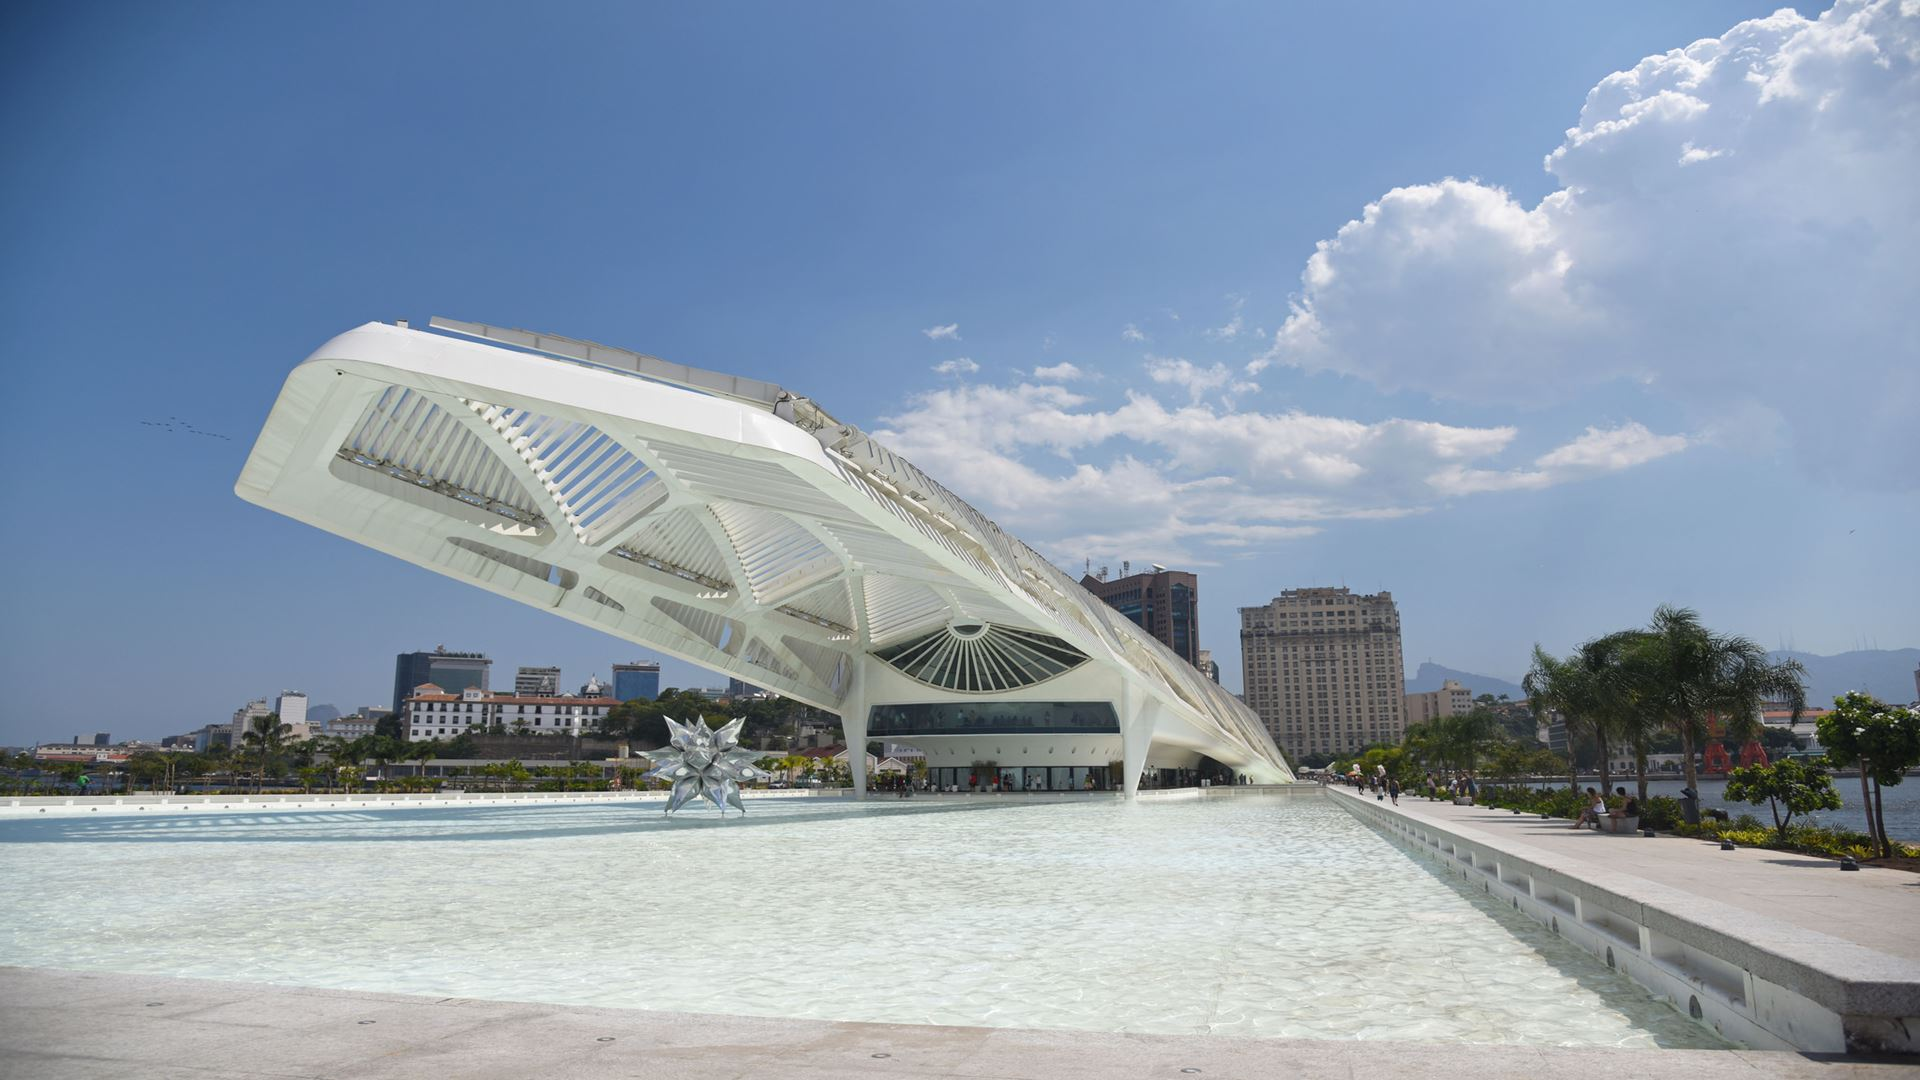 Tour to Olimpic Boulevard and Museum of Tomorrow